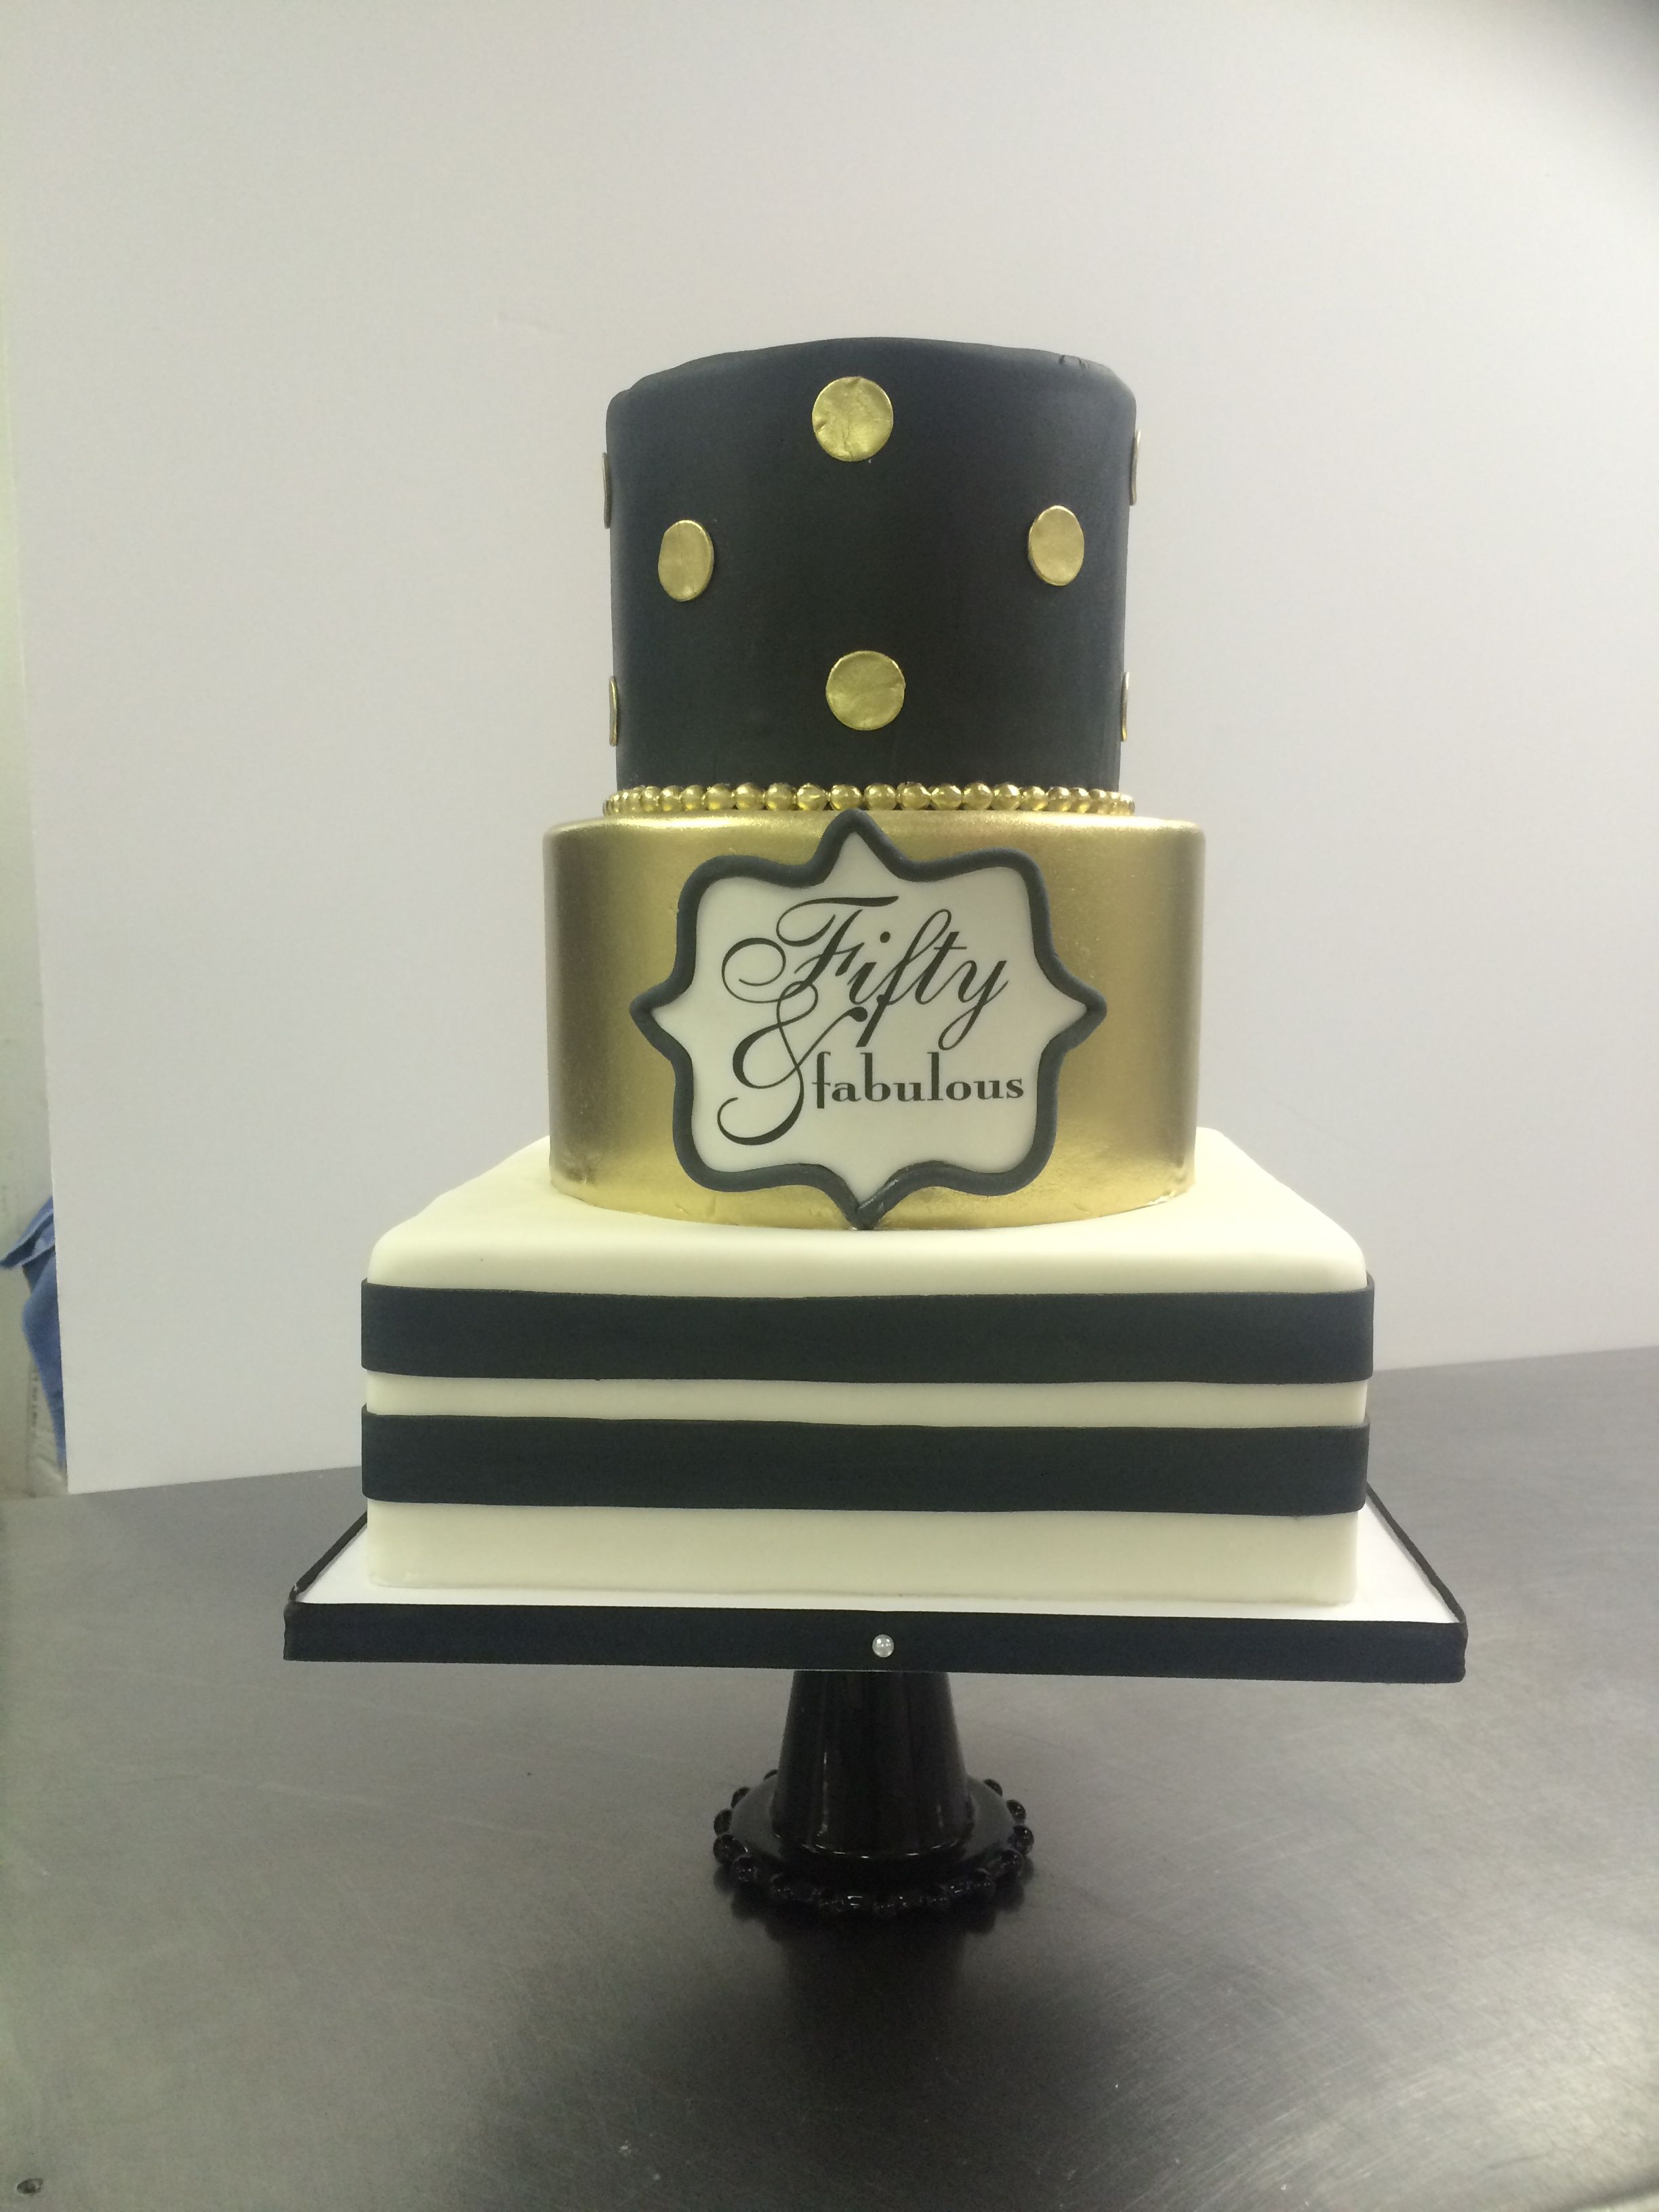 Fifty Very Fabulous Gold And Black Cake Birthday Cake